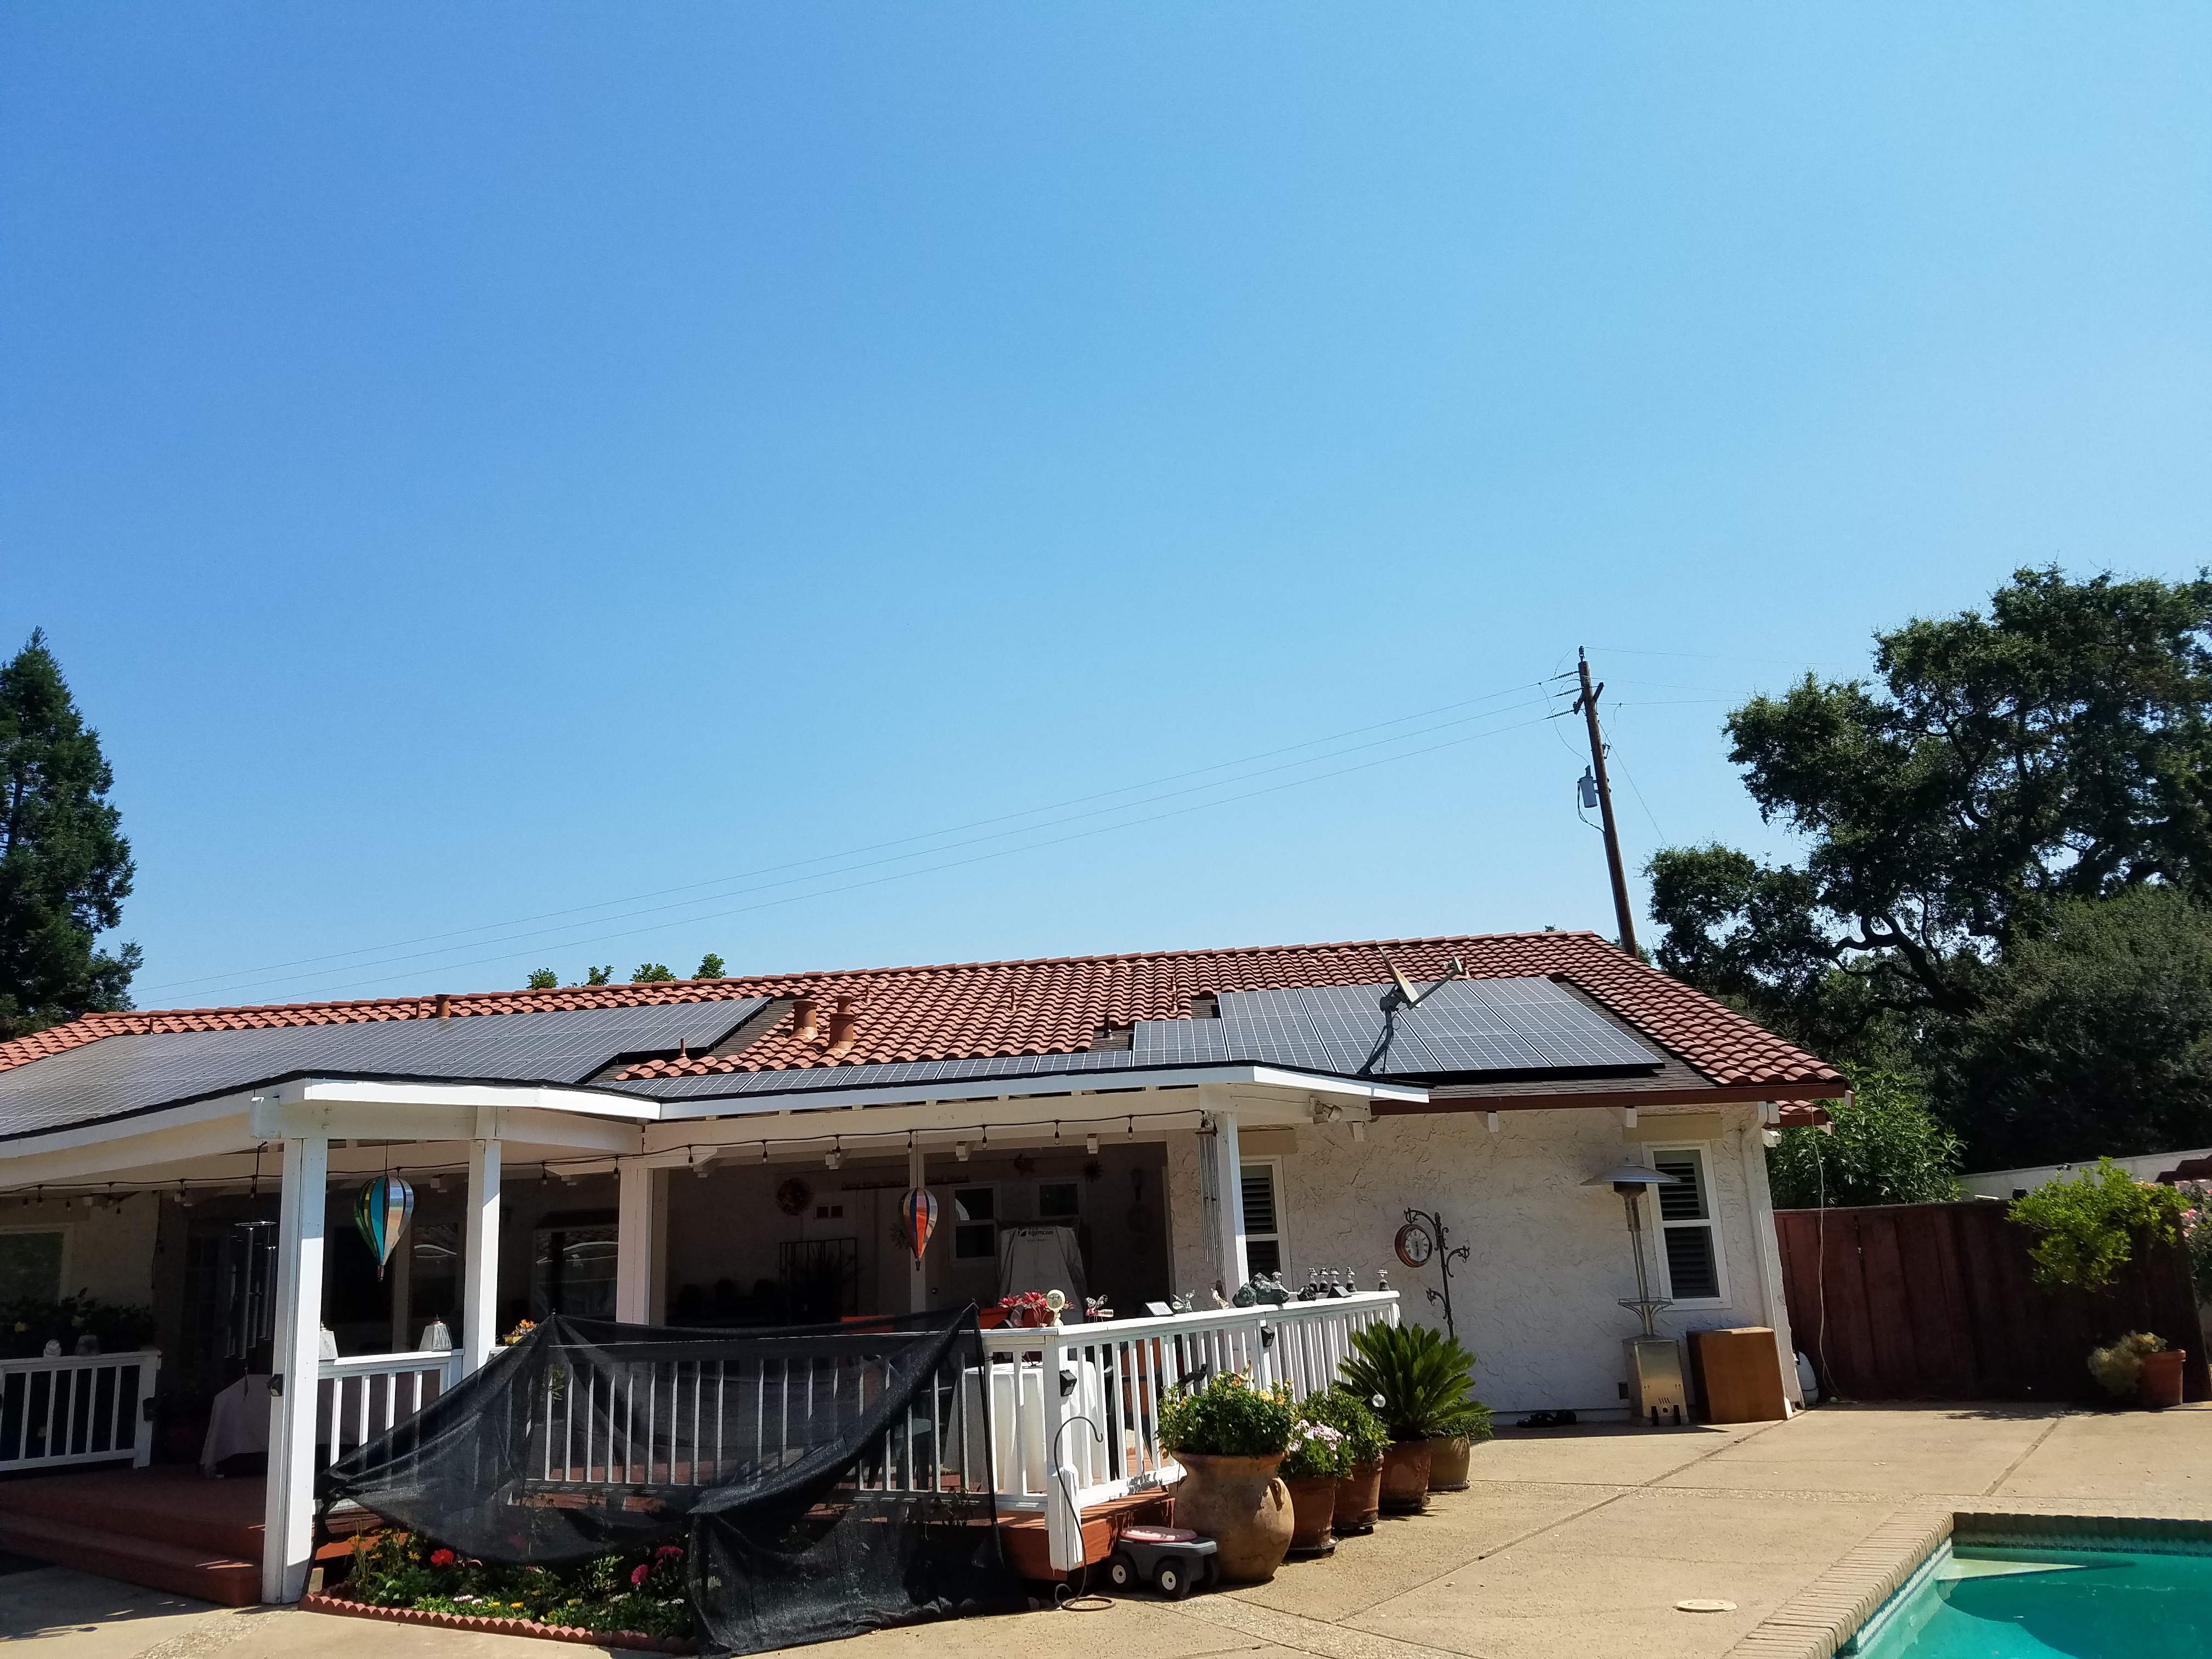 Affordable Roofing & Solar by Simmitri image 6